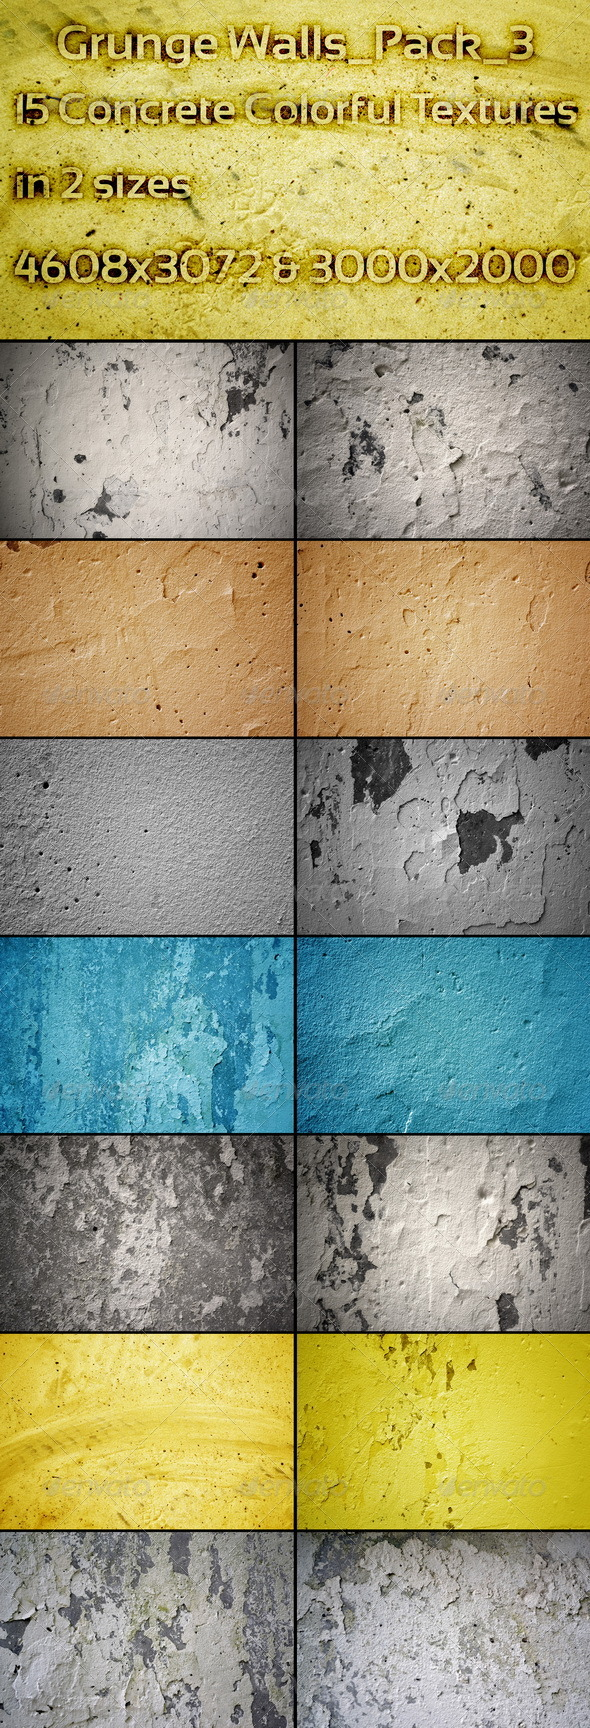 Grunge Walls_Pack_3 - Concrete Textures